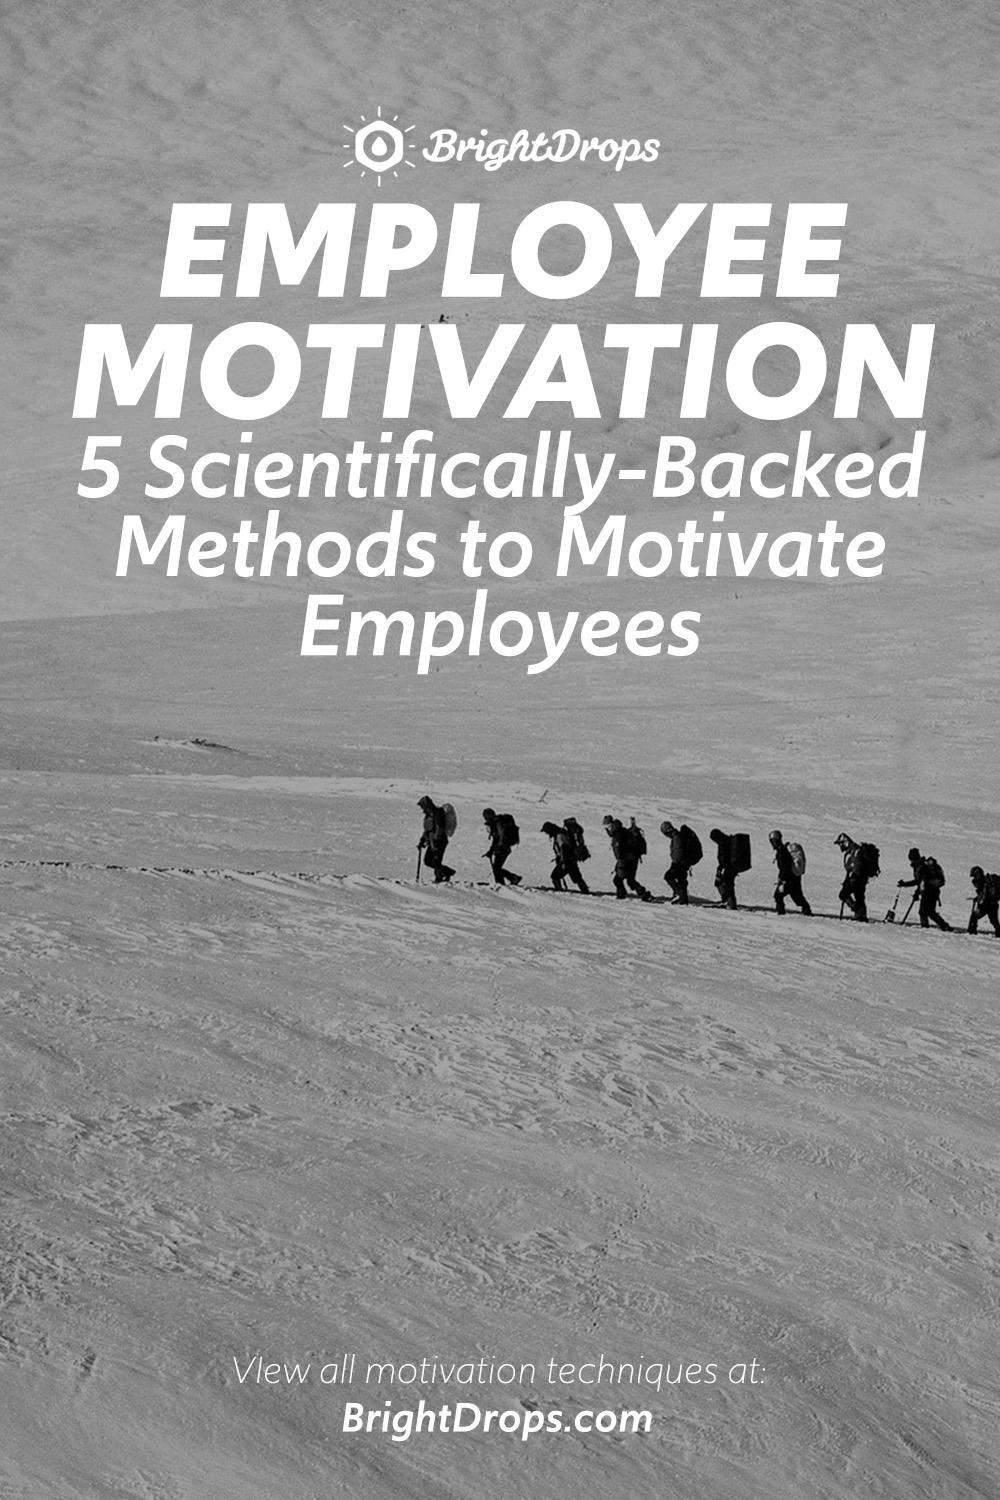 How to Motivate Employees: 5 Scientifically-Backed Methods to Get Results